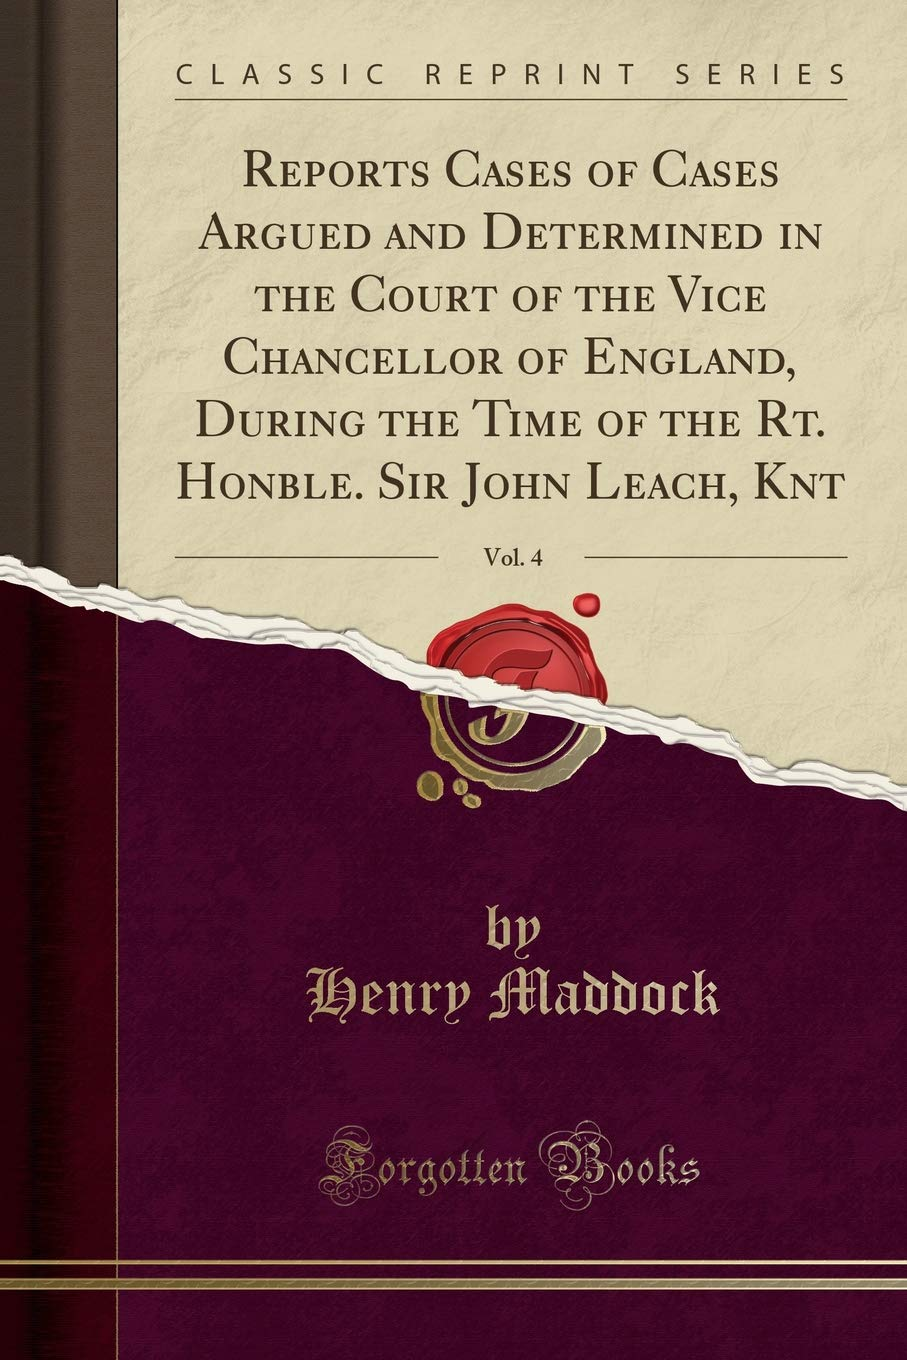 Reports Cases of Cases Argued and Determined in the Court of the Vice Chancellor of England, During the Time of the Rt. Honble. Sir John Leach, Knt, Vol. 4 (Classic Reprint) PDF